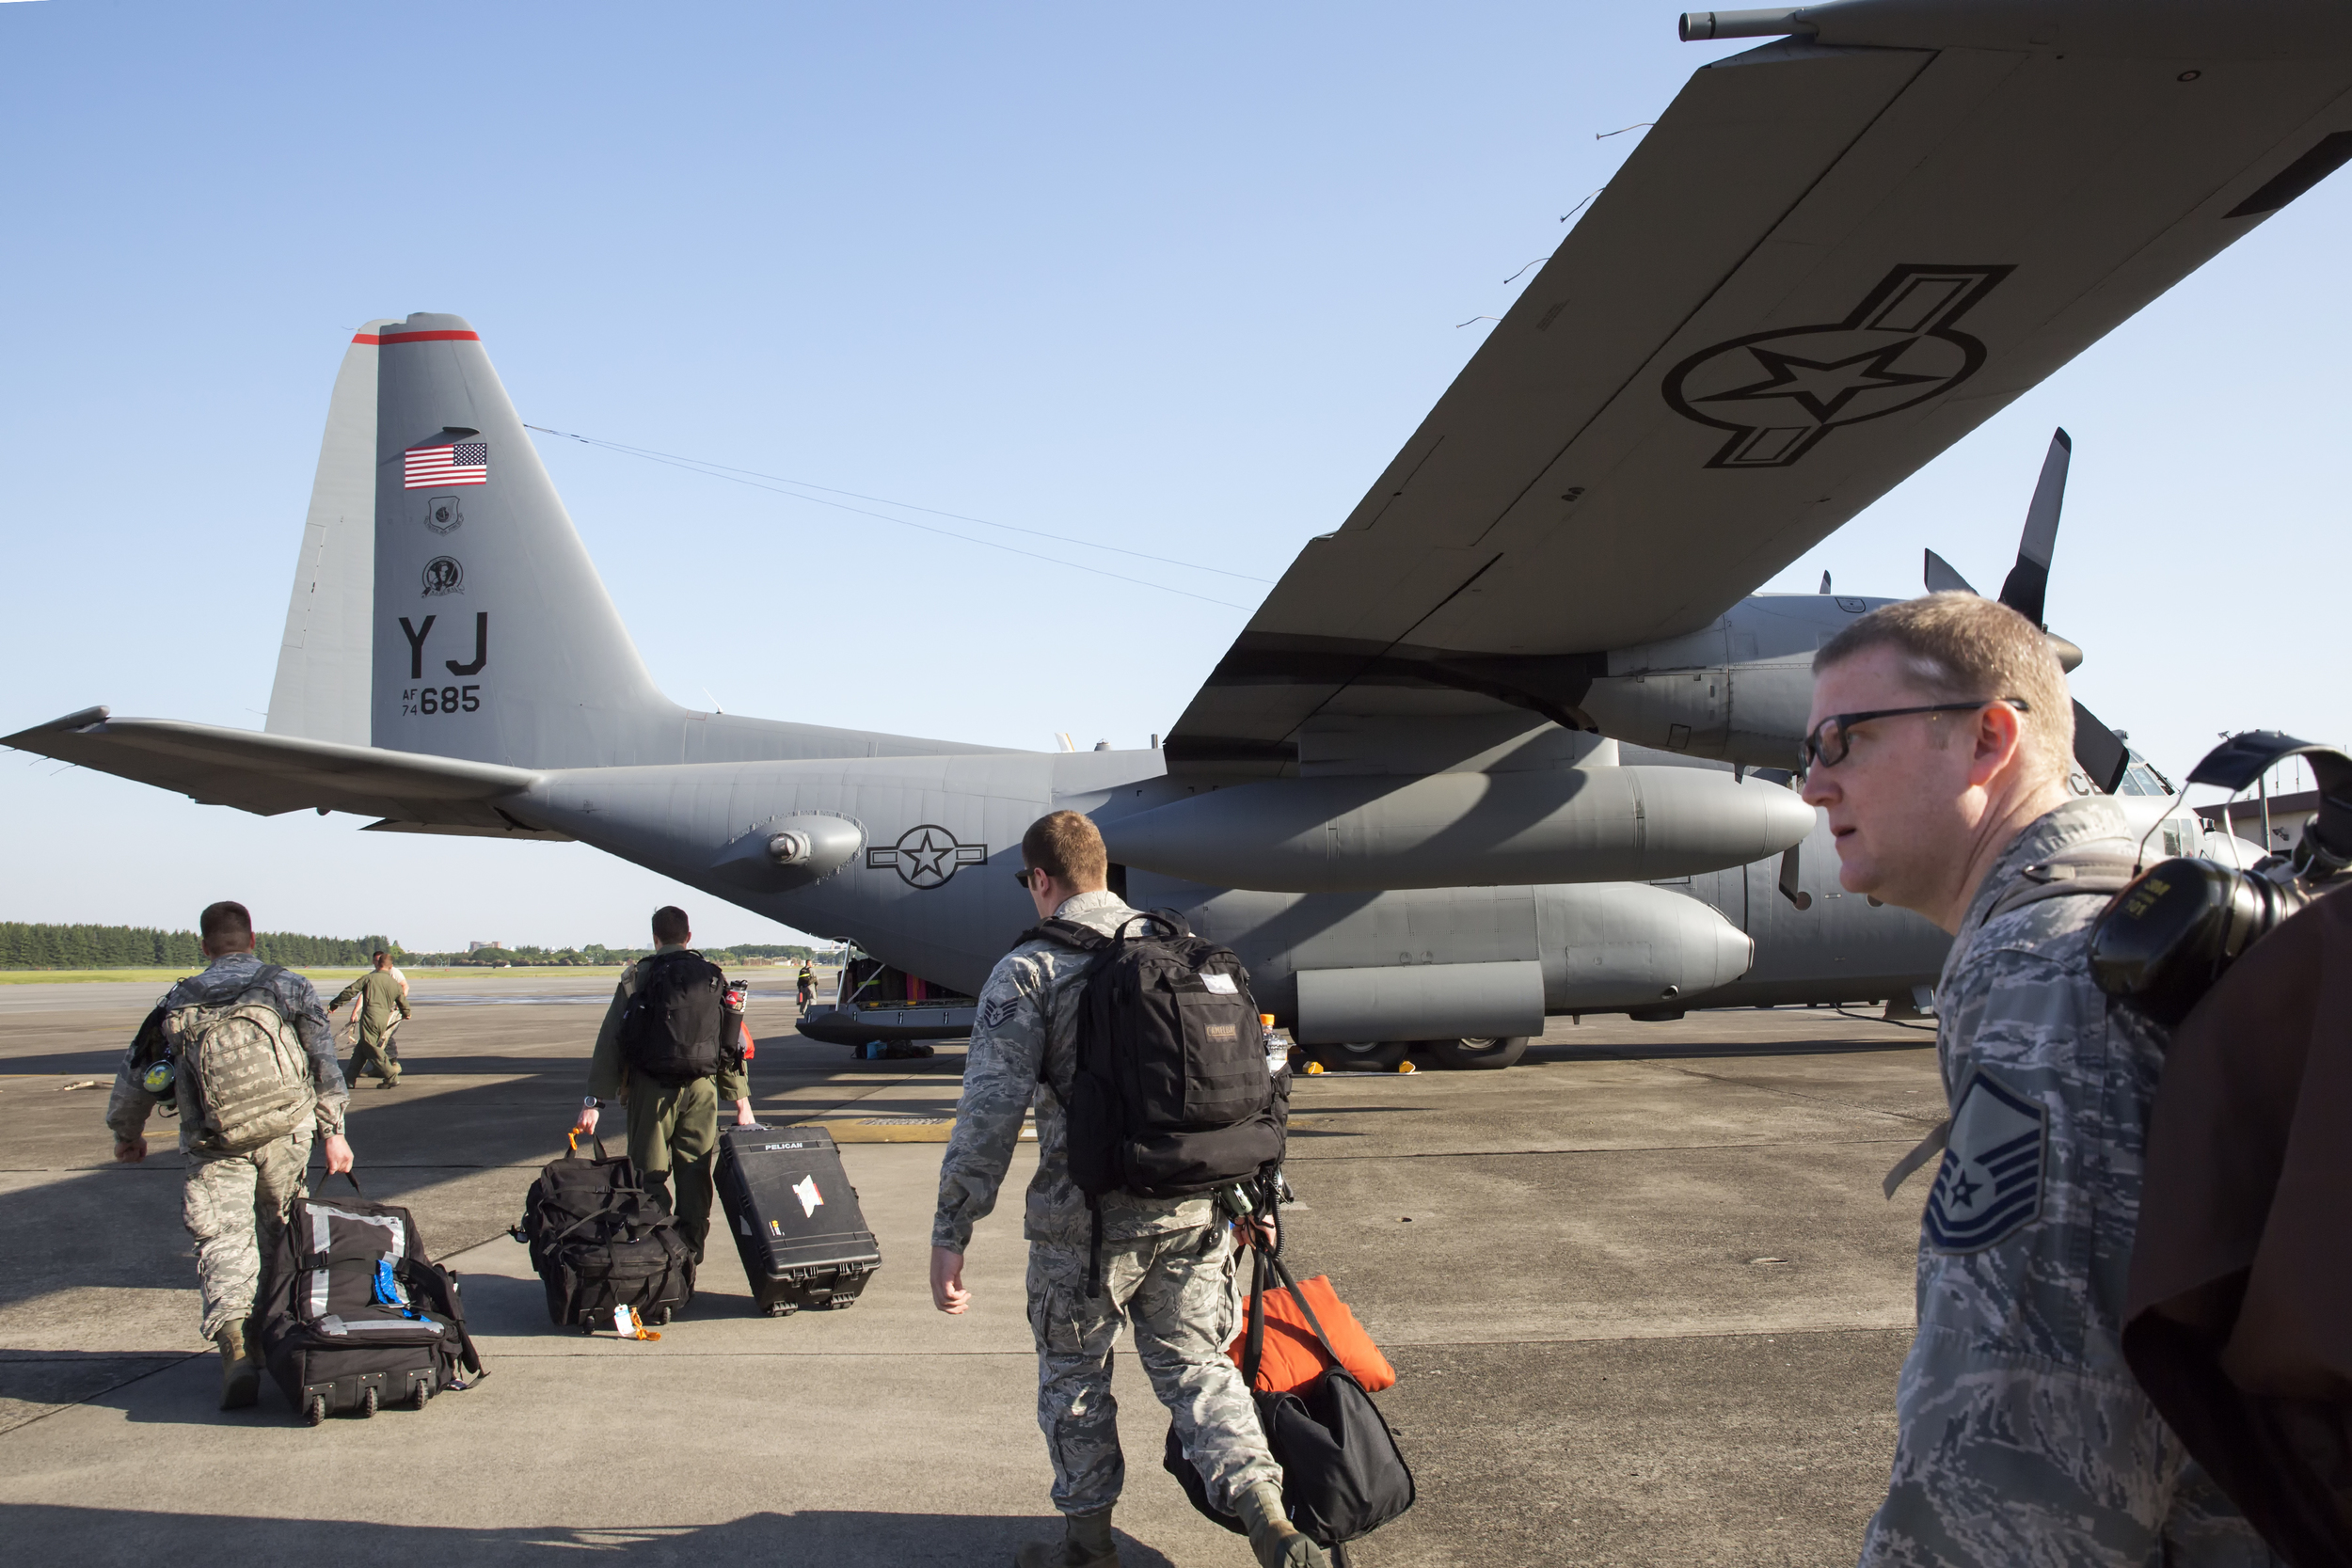 Yokota airmen board a C-130 Hercules at Yokota Air Base, Japan, May 5, 2015. Airmen departed to conduct humanitarian assistance and disaster relief operations in support of the Government of Nepal in the wake of a 7.8 magnitude earthquake that devastated many regions of the country on April 25, 2015. (U.S. Air Force photo by Osakabe Yasuo/Released)